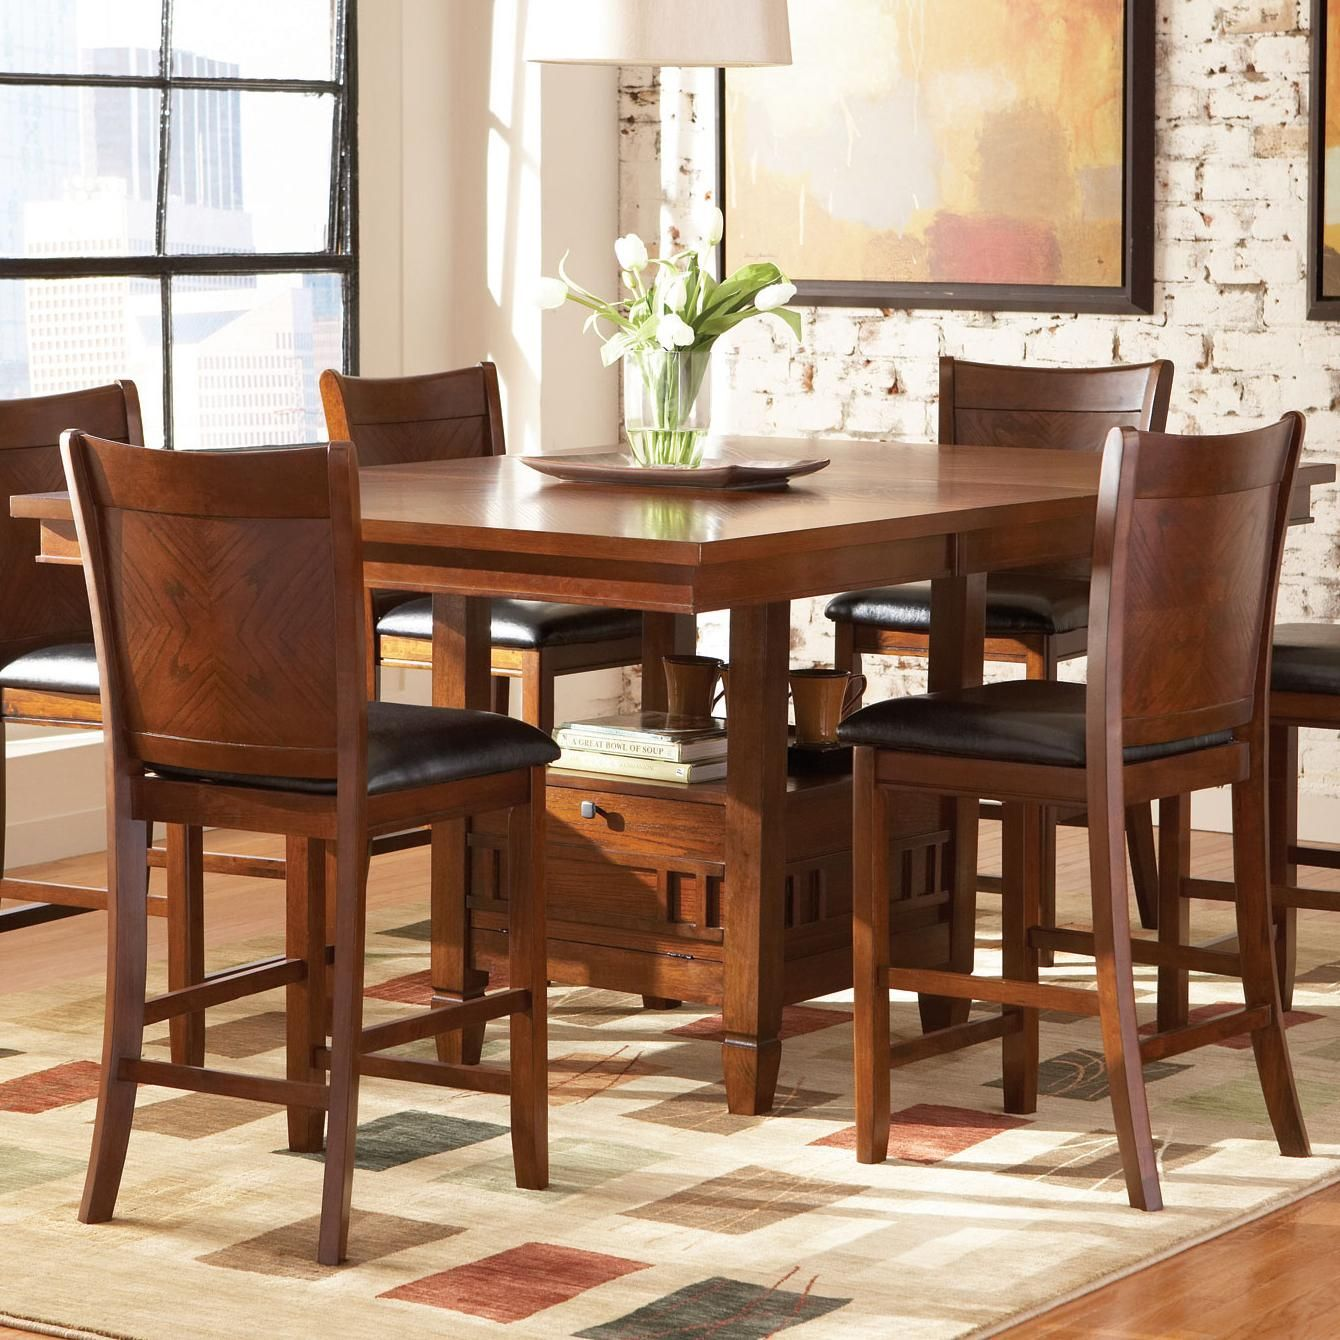 Bar height square kitchen table  Thomson Counter Height Table by Coaster  Dadus  Pinterest